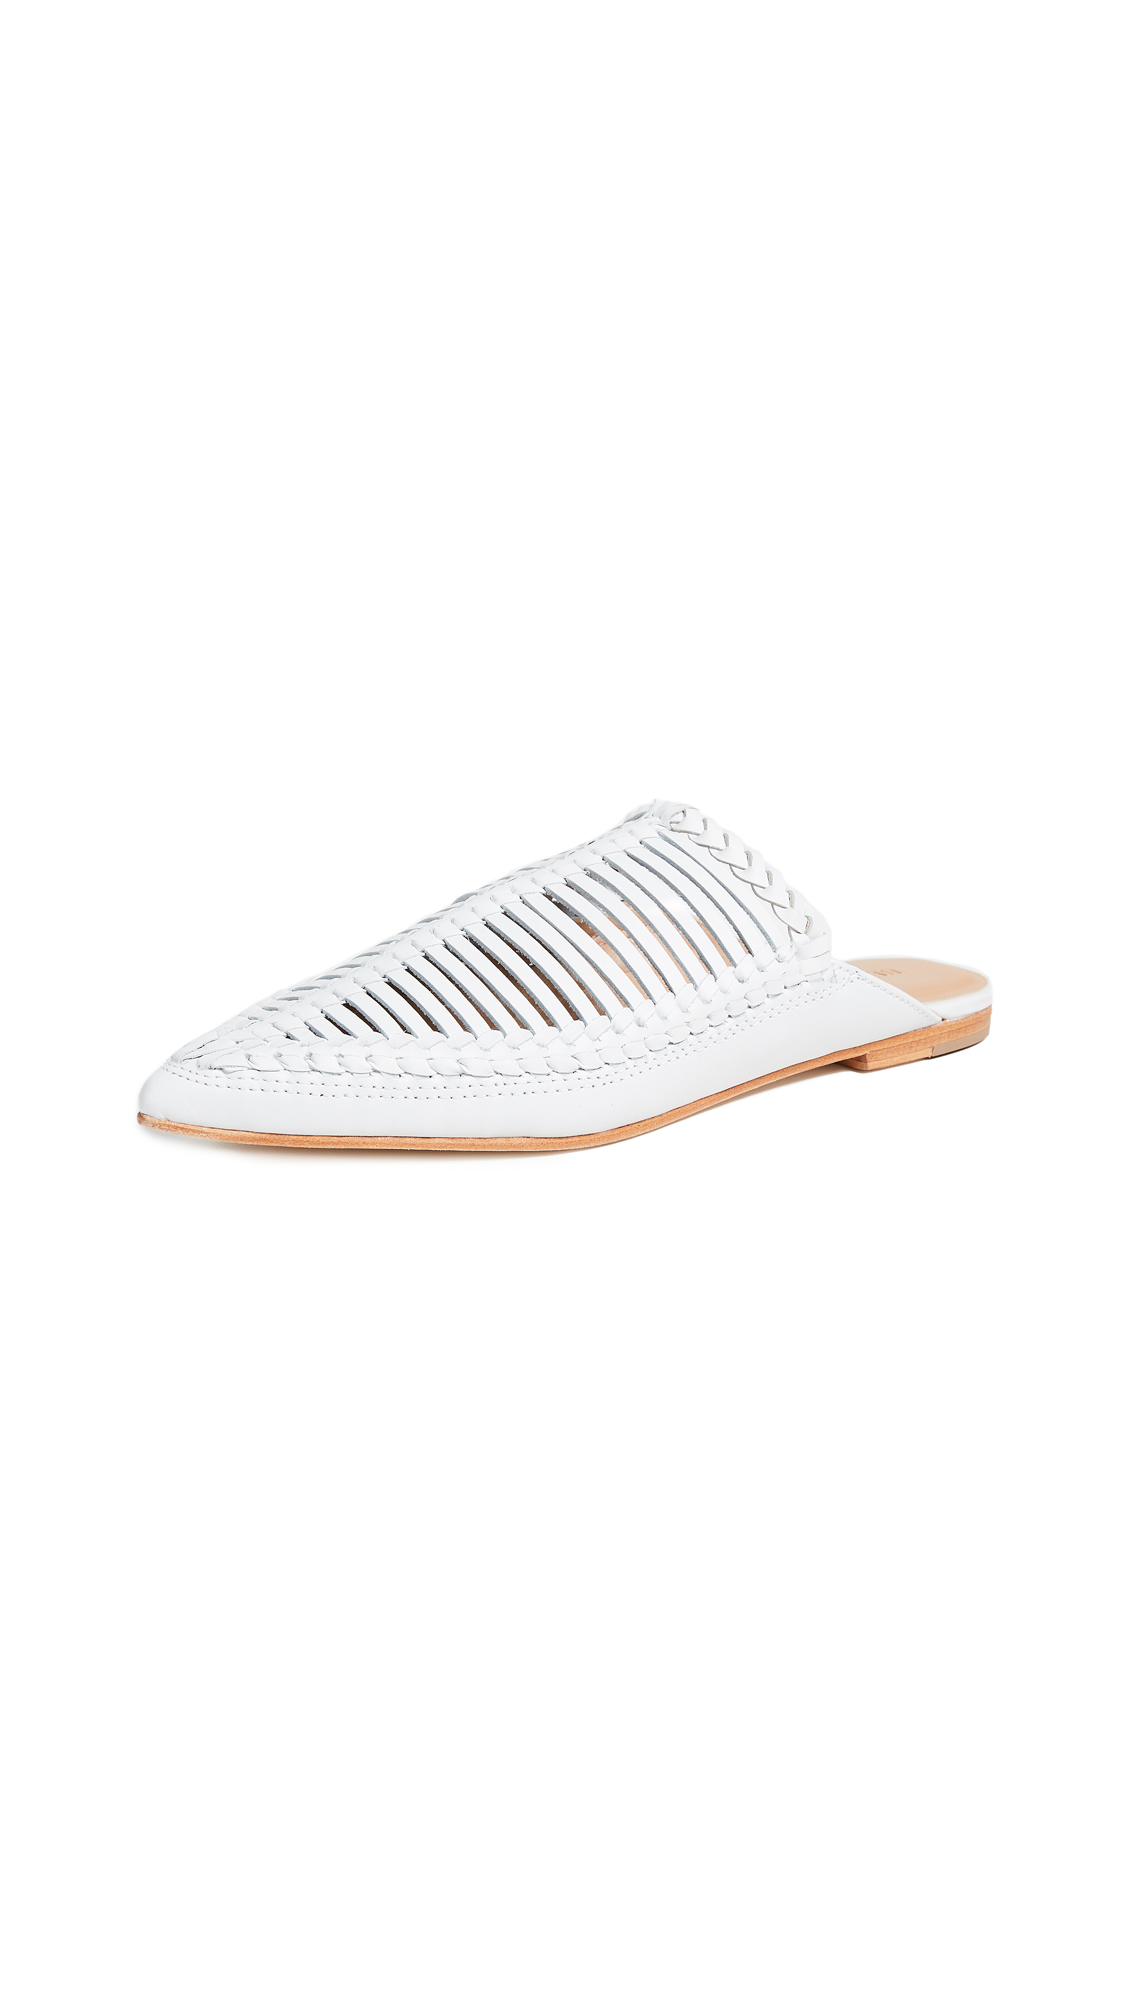 Ulla Johnson Jana Babouche Mules - Chalk